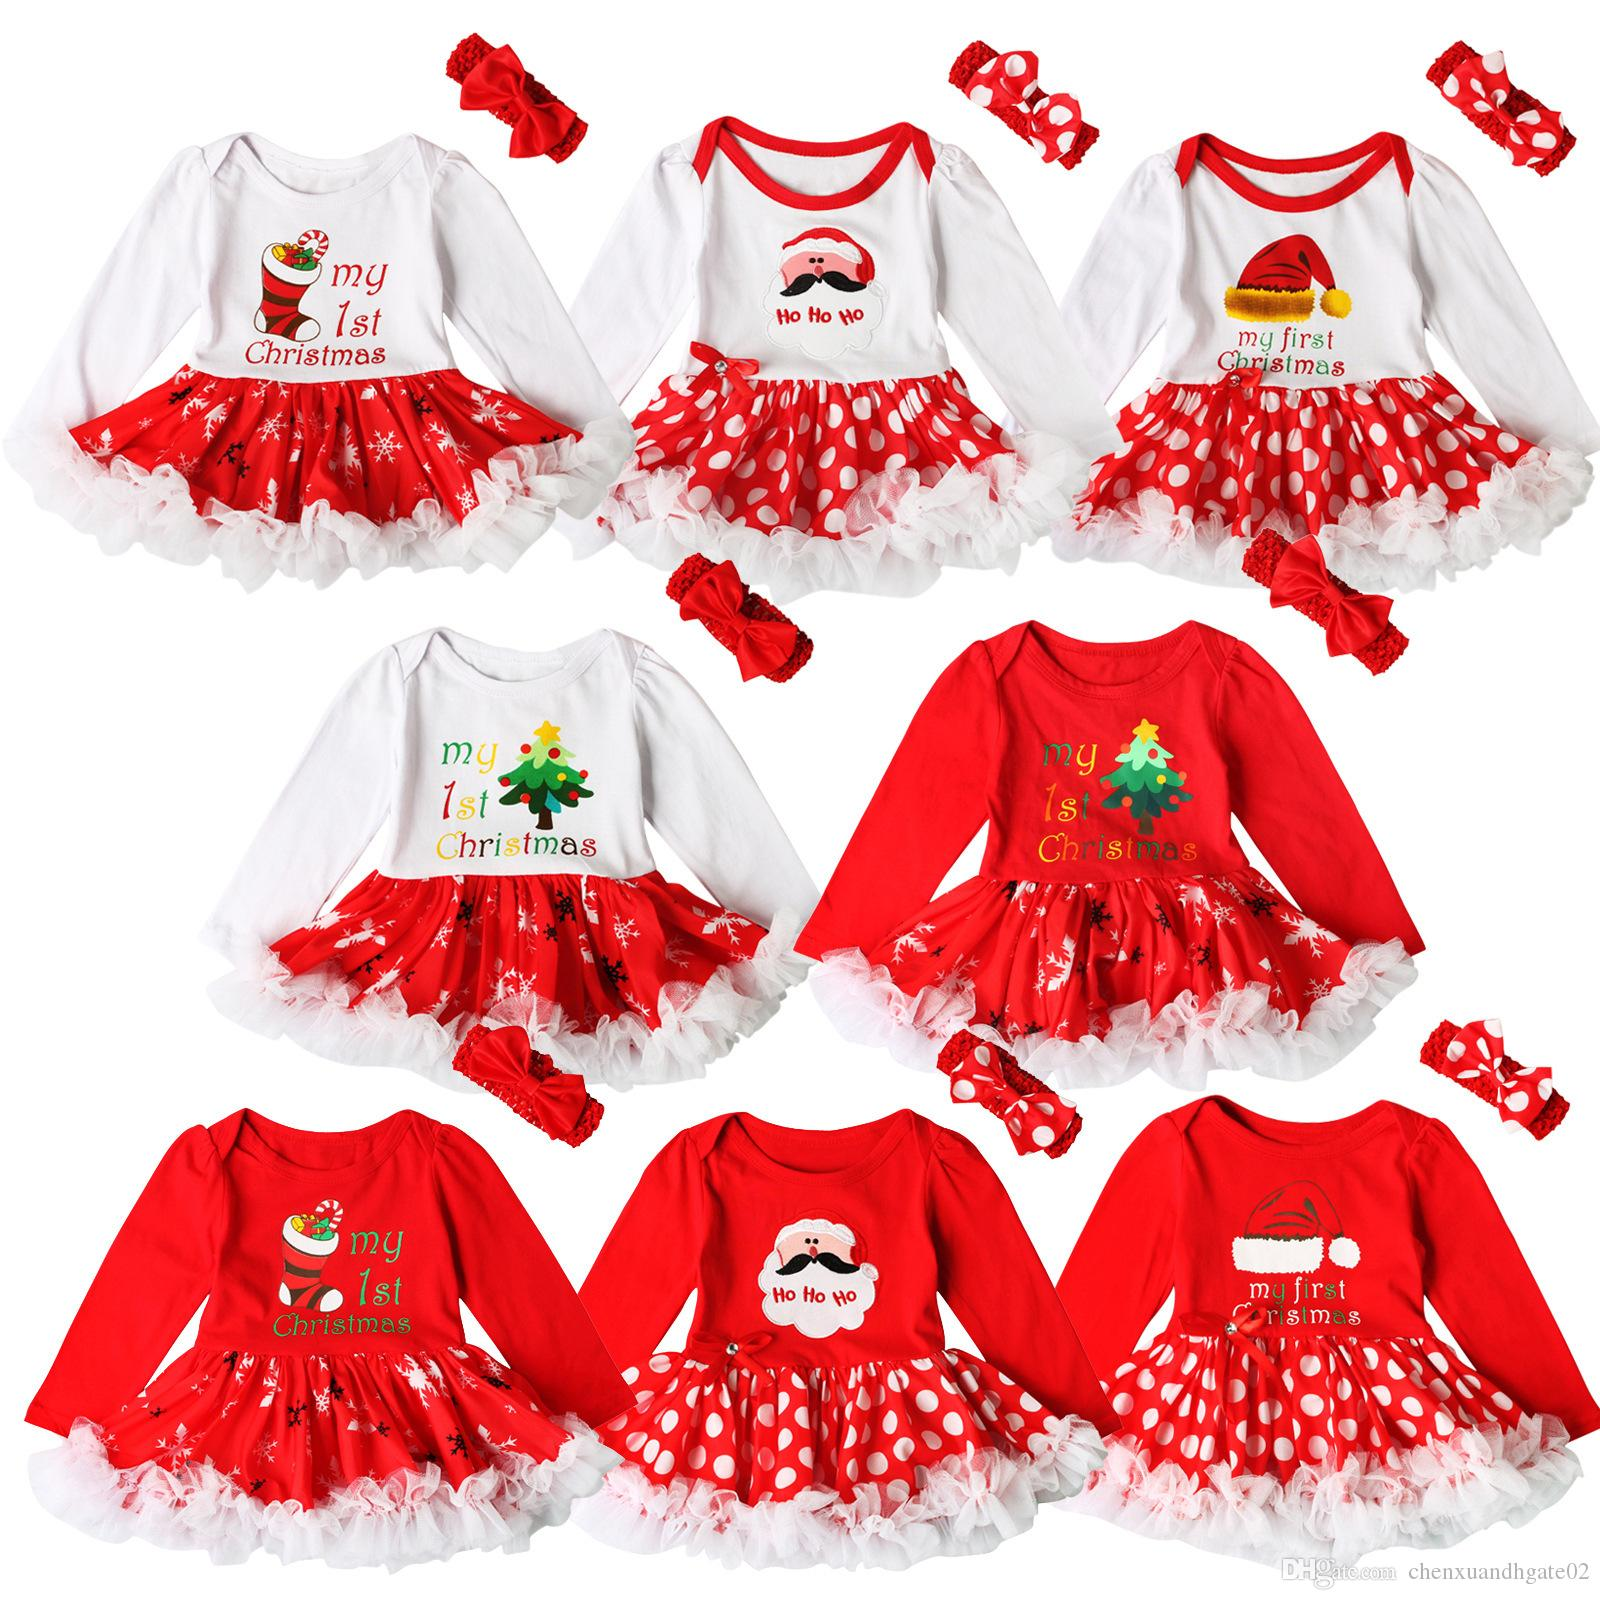 My First Christmas.2019 Newborn Christmas Clothes Baby Girls Clothing Set My First Christmas Baby Clothes Set Ruffle Tutu Dress New Born Baby Clothing From